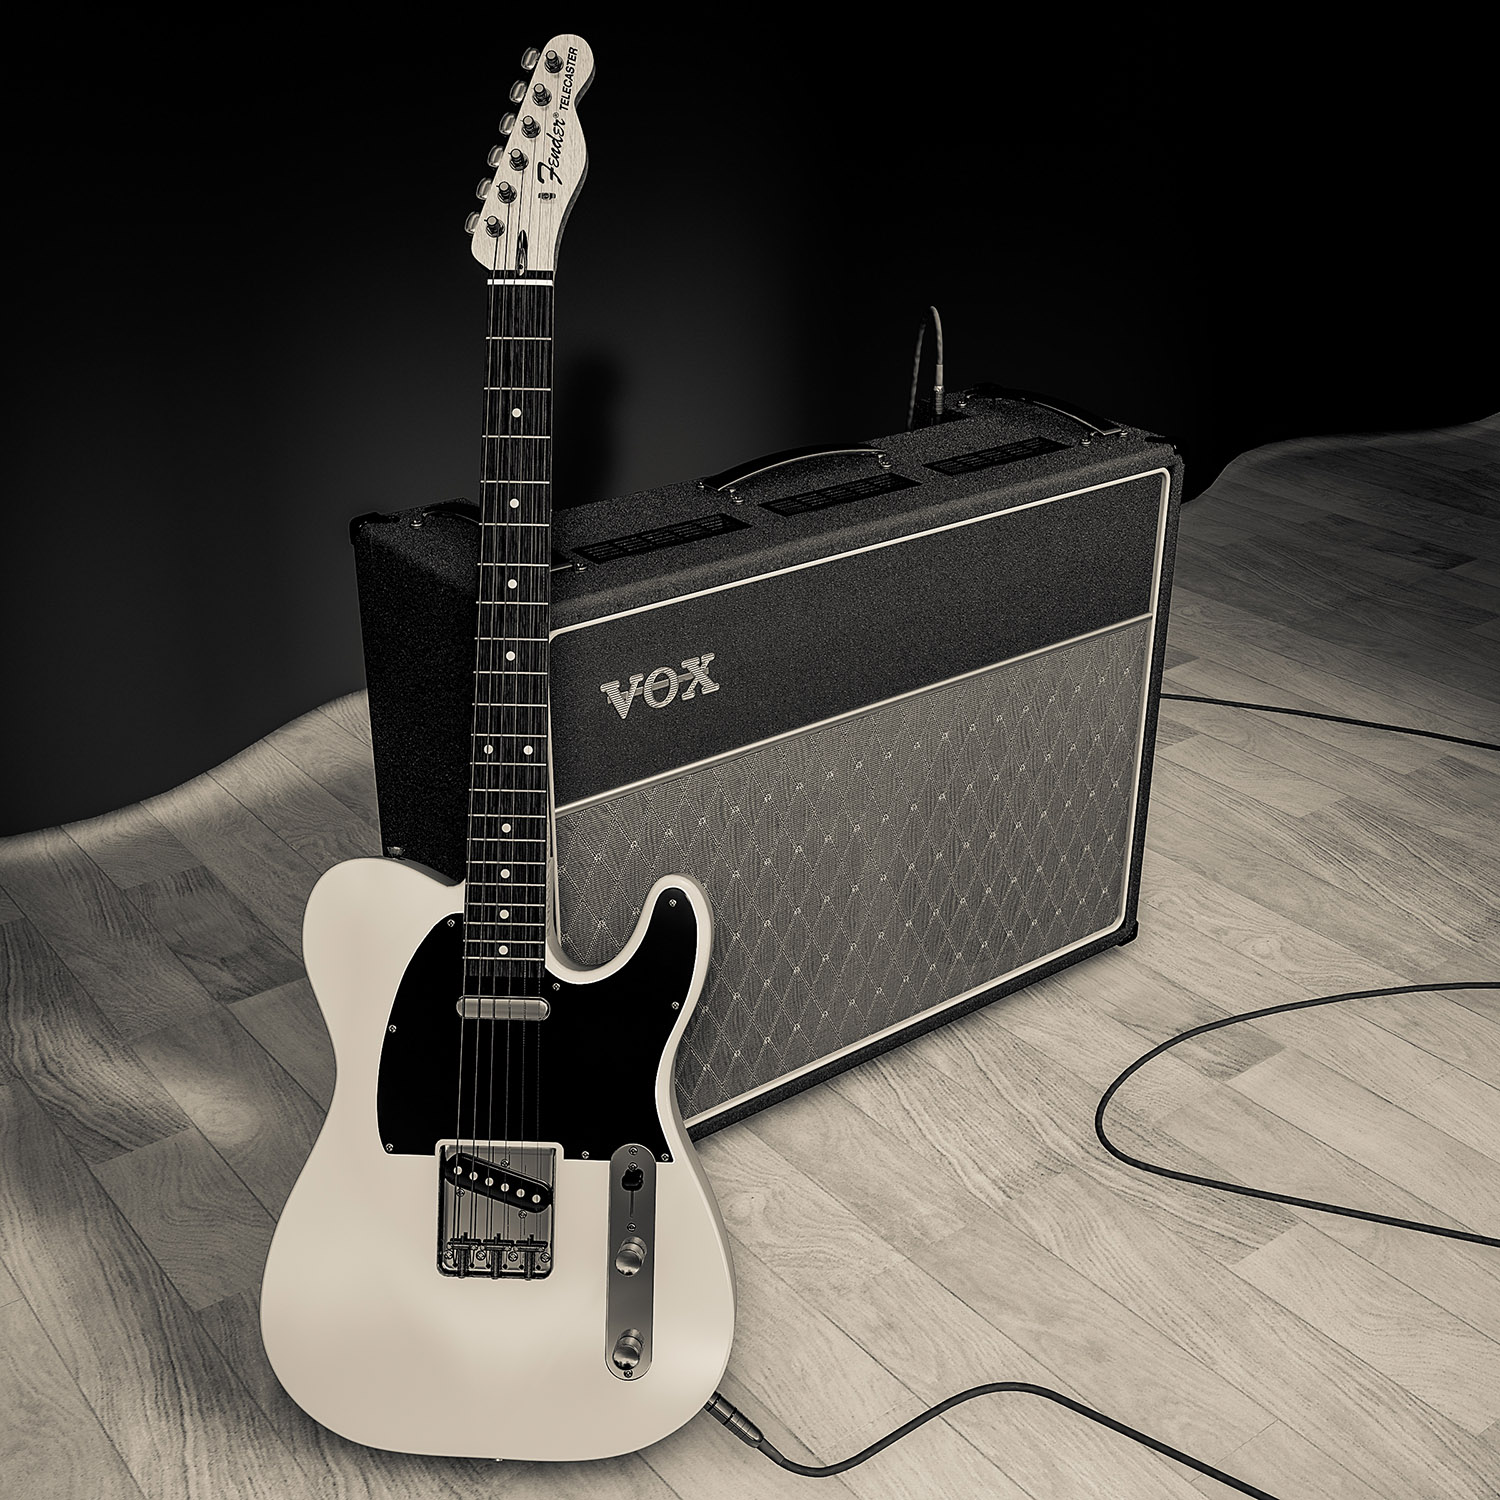 Fender Telecaster and Vox AC30 amplifier